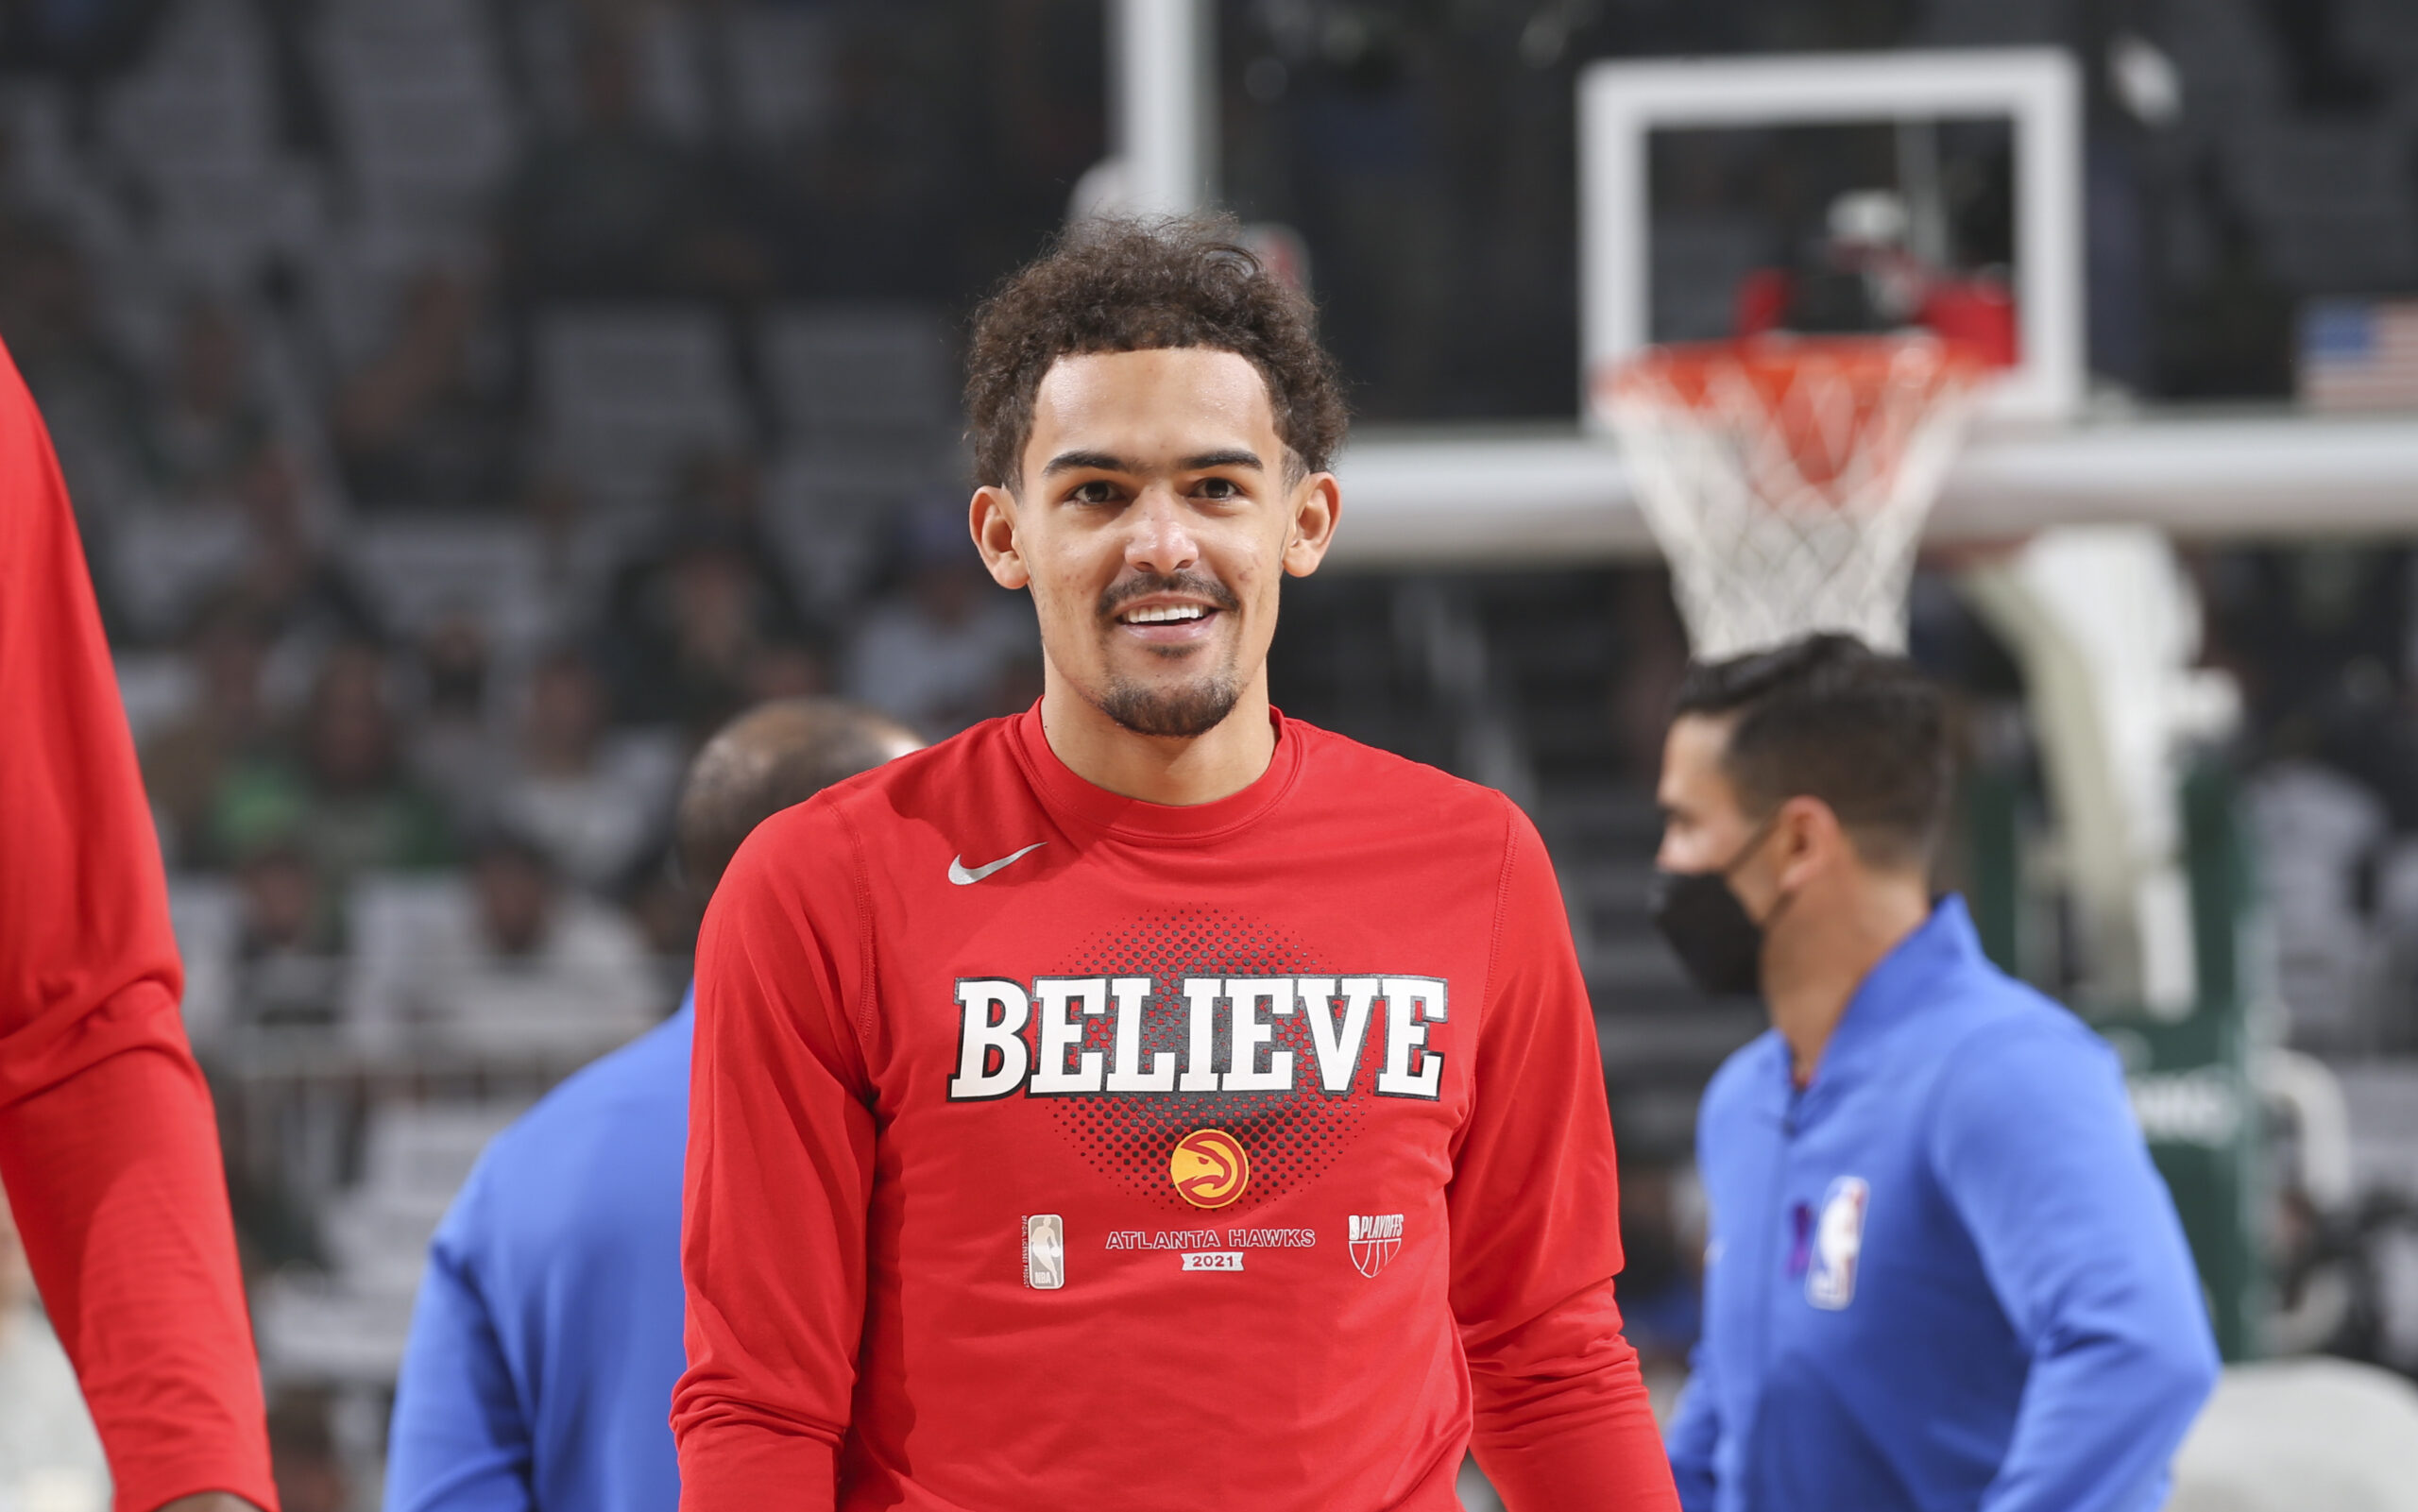 Reports: Atlanta Hawks, Trae Young expected to finalize extension